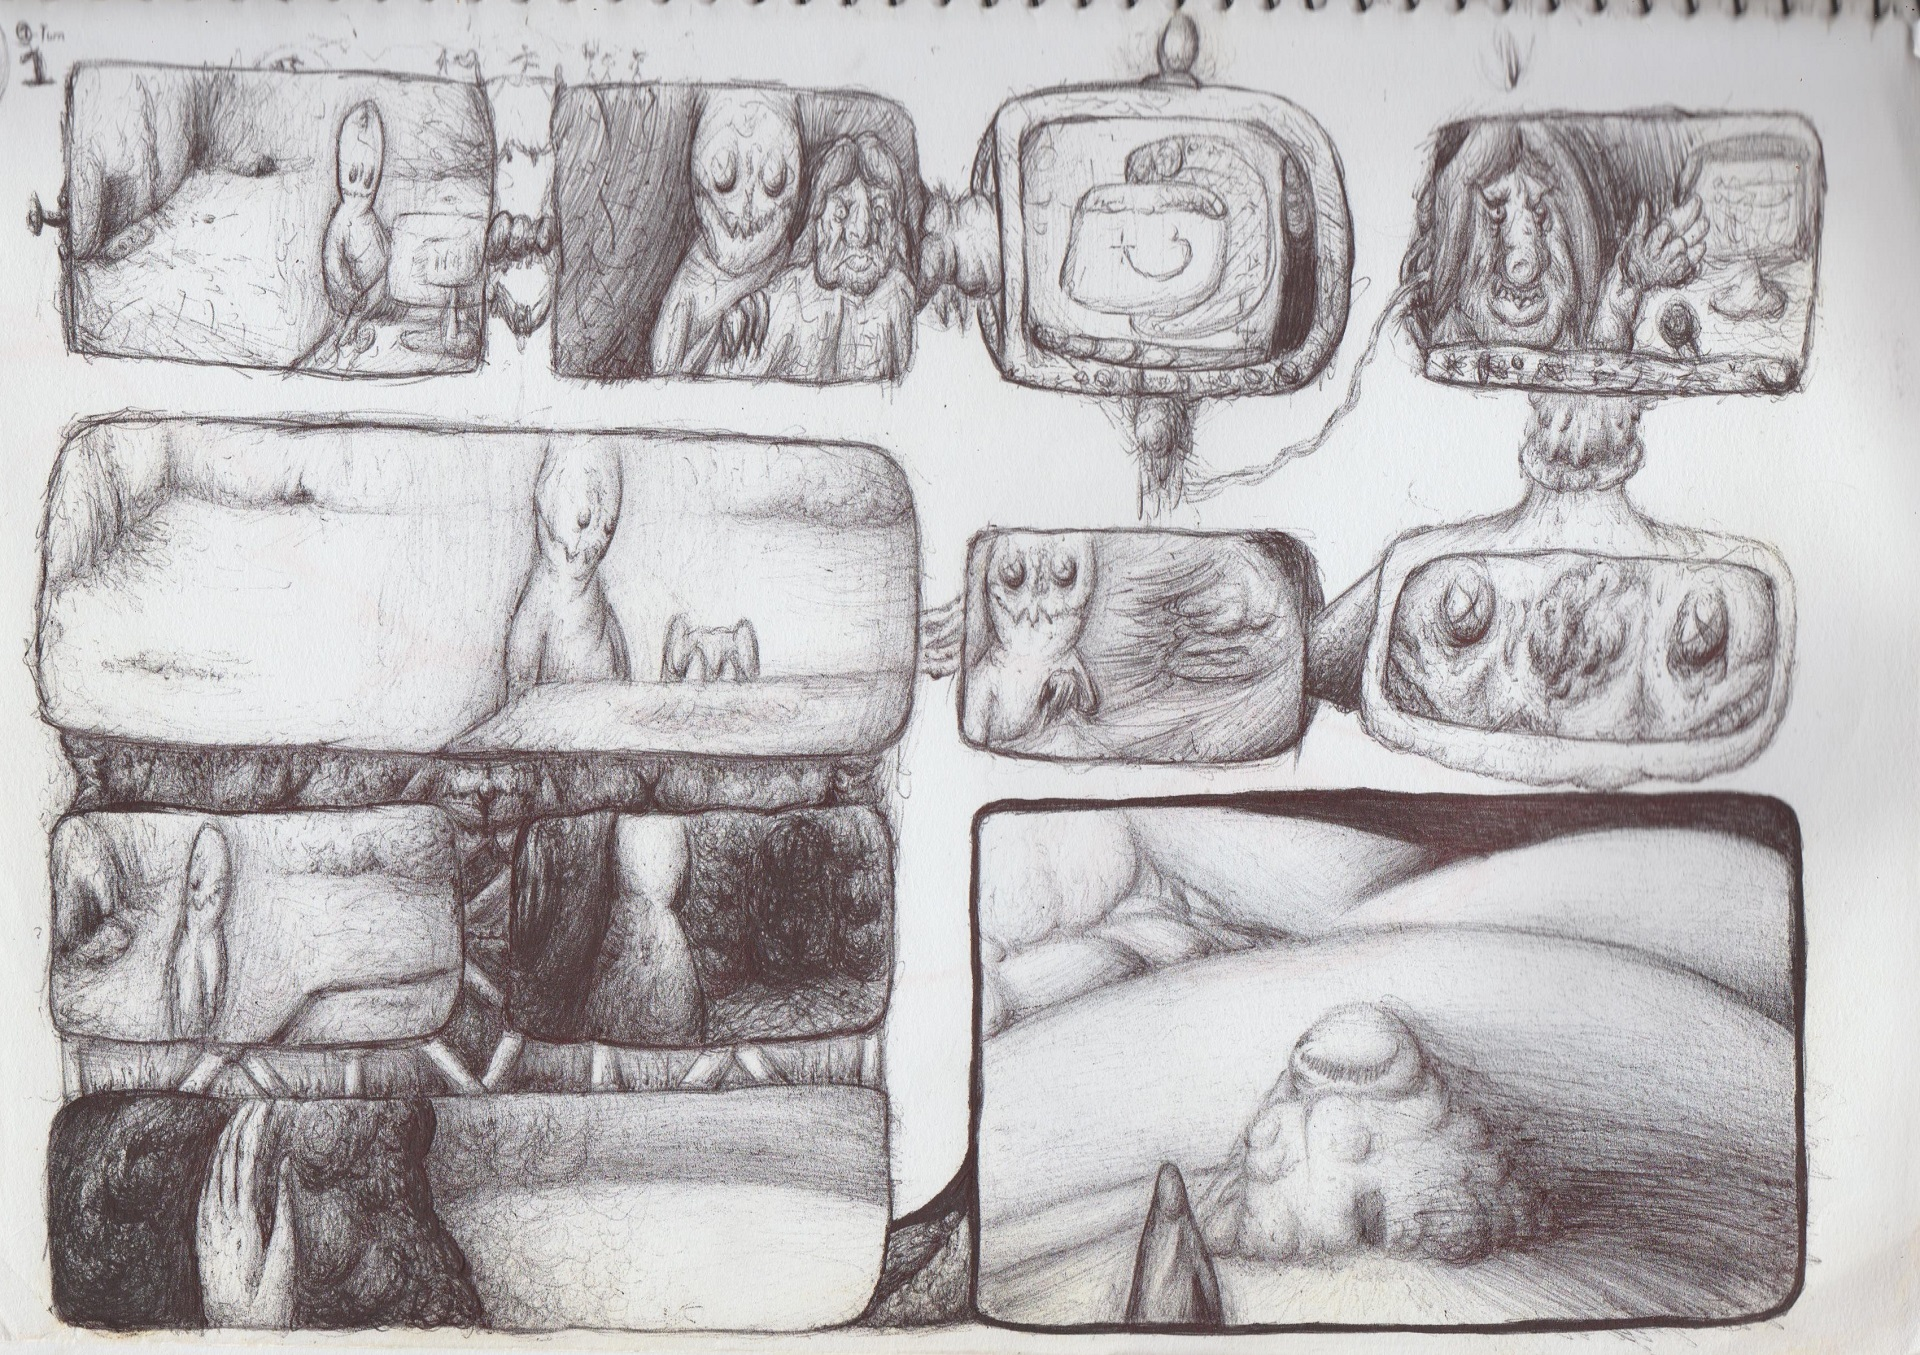 Untitled Comic, Page 1